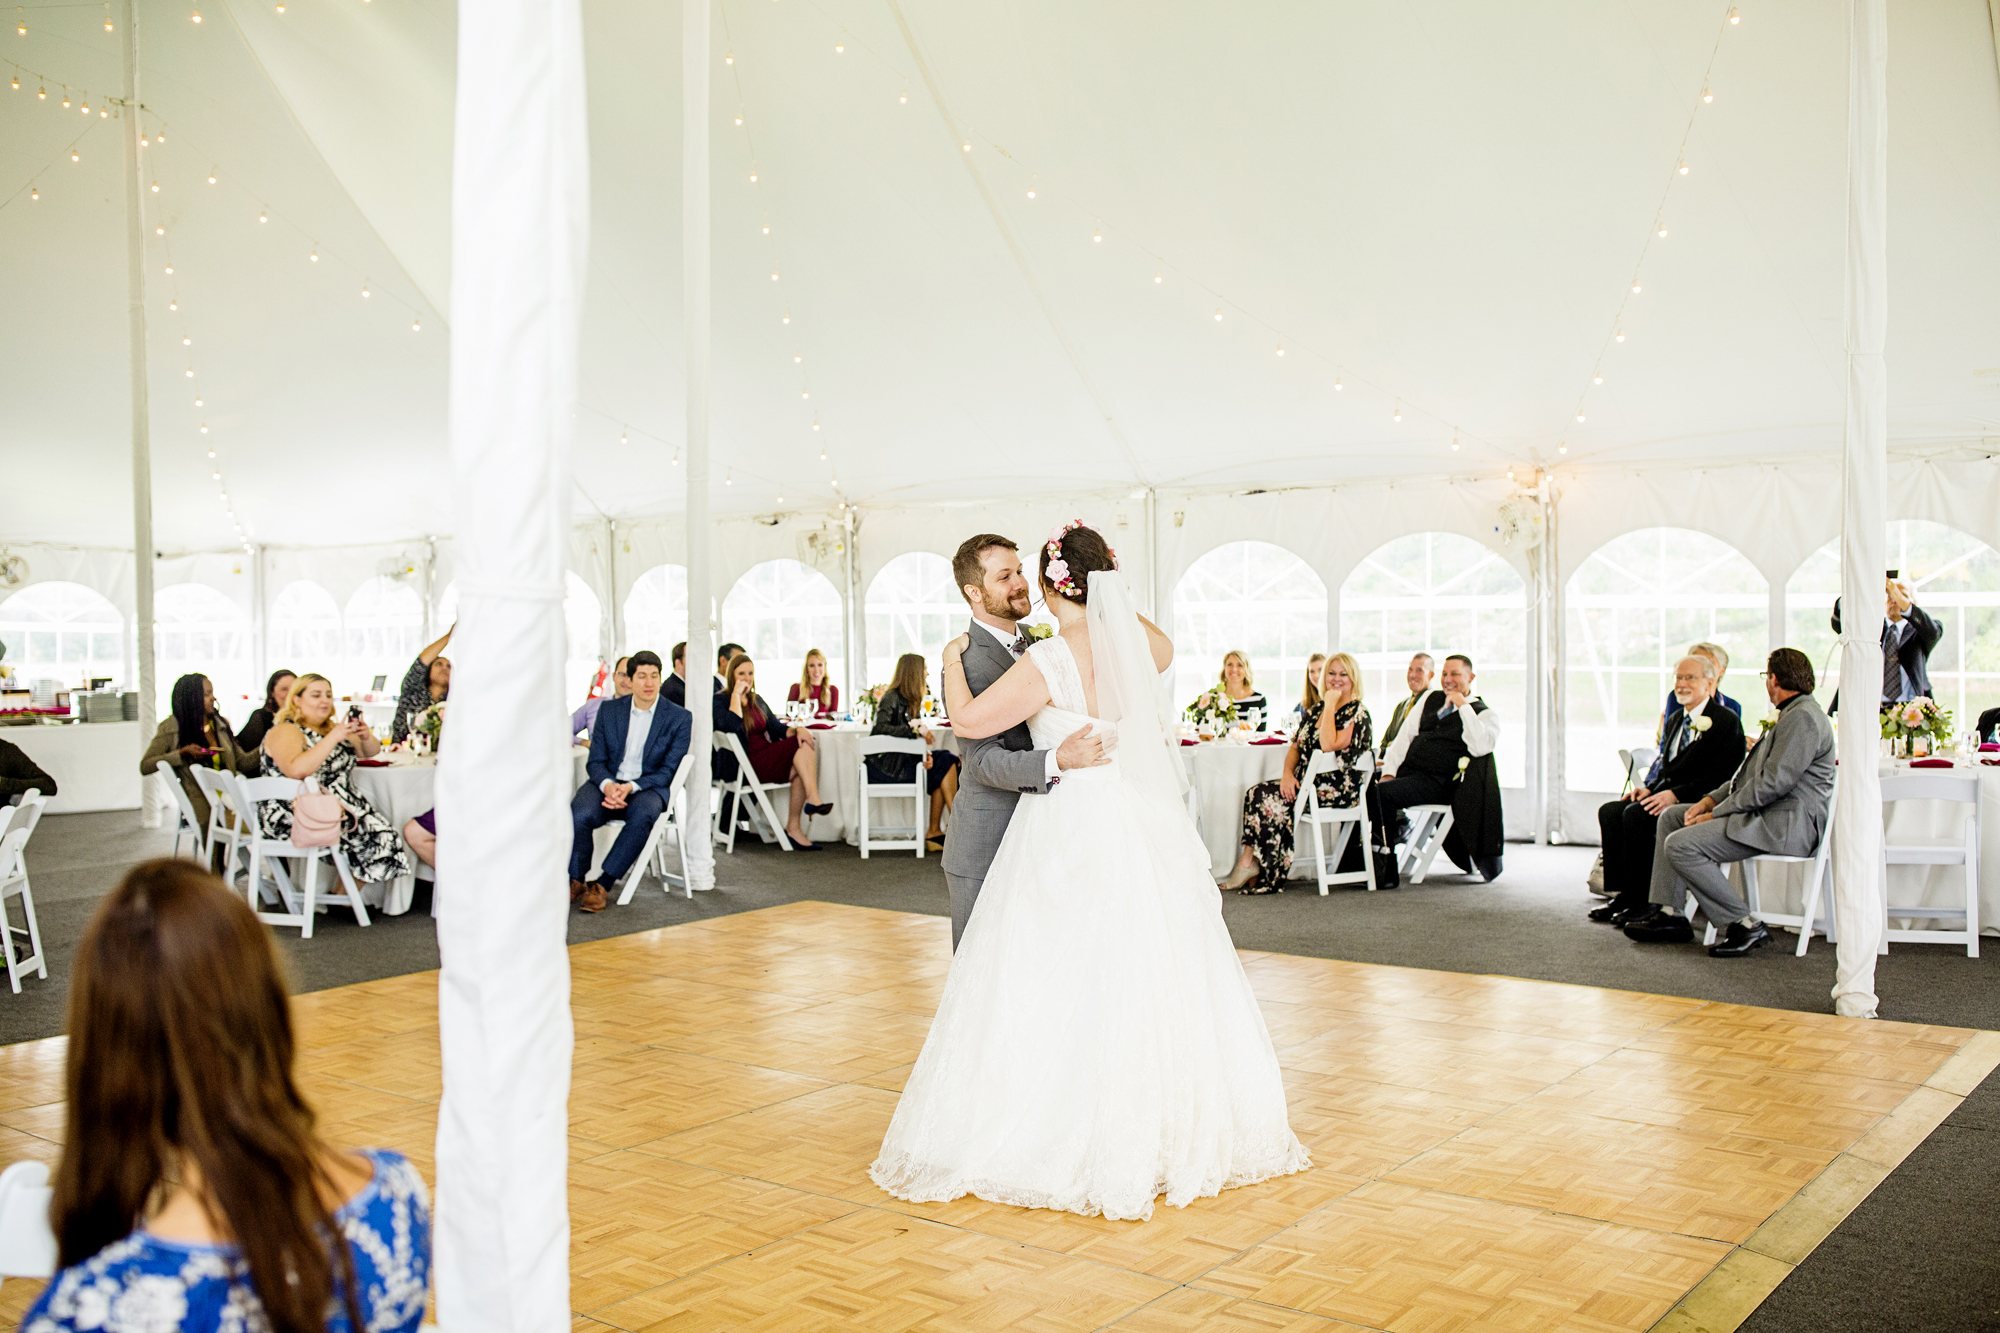 Seriously_Sabrina_Photography_Lisle_Illinois_Morton_Arboretum_Wedding_Day_Gowen105.jpg